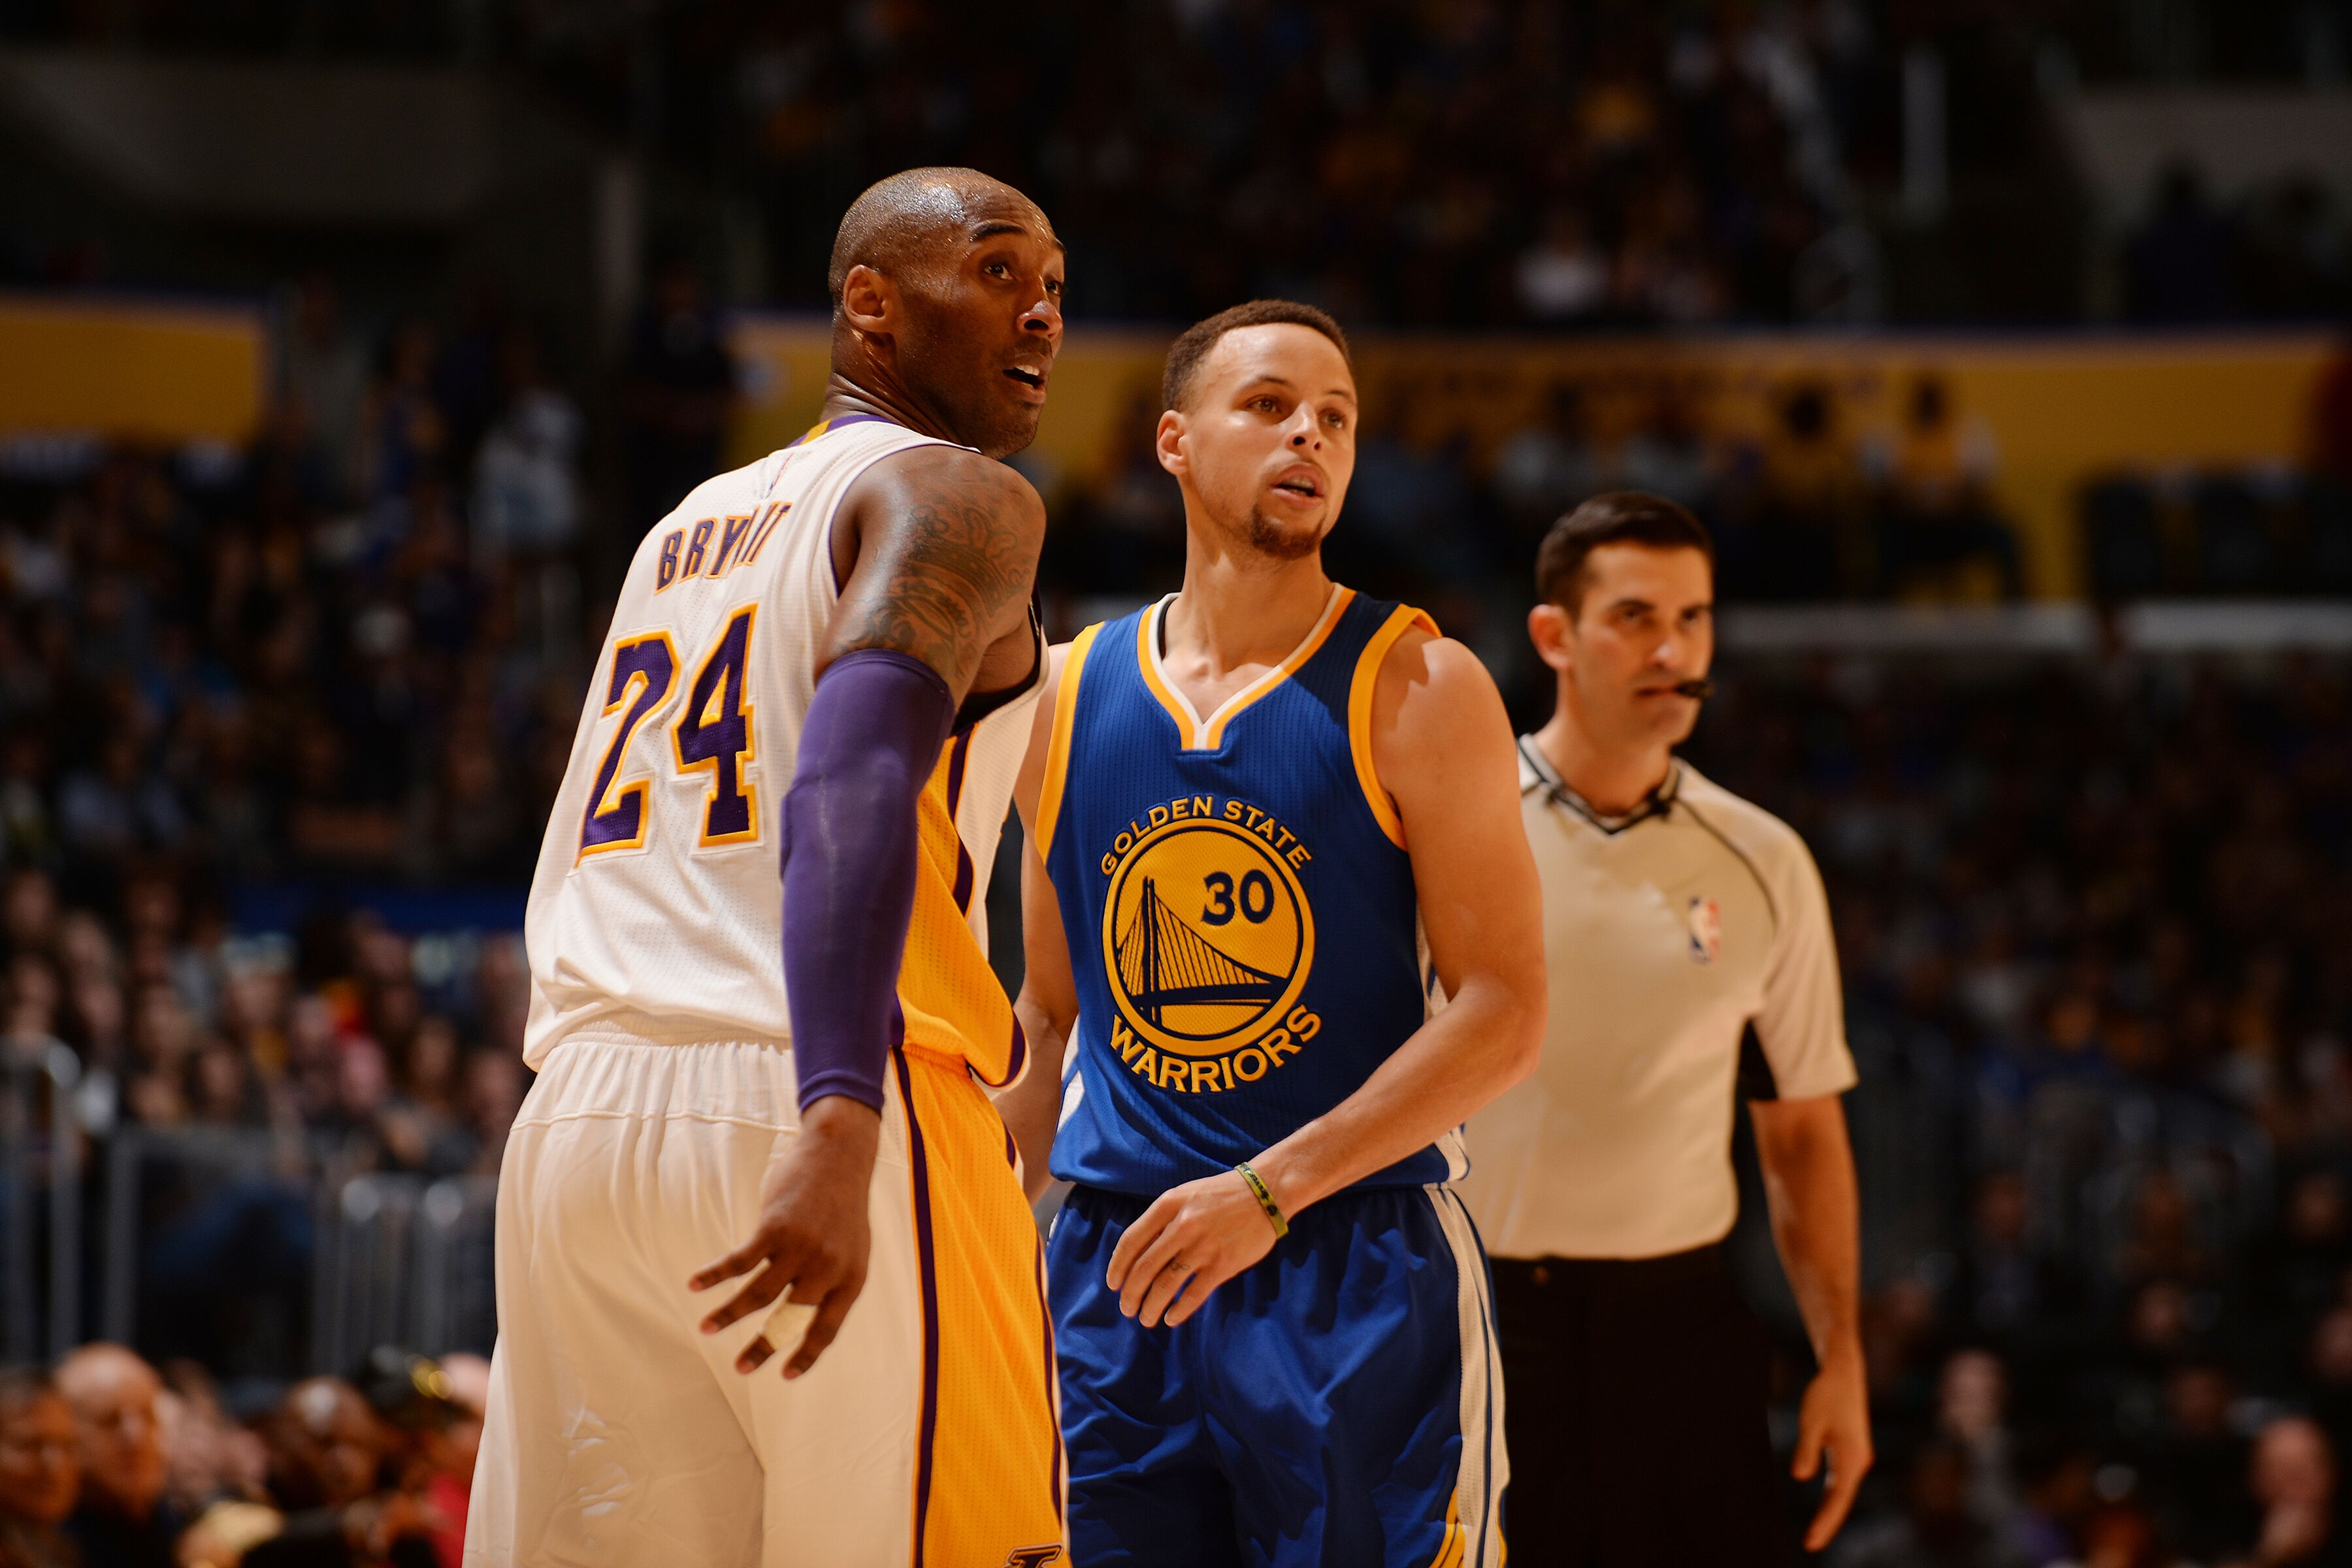 Kobe Bryant stands on the court against Stephen Curry on March 6, 2016 at STAPLES Center in Los Angeles. | Source: Getty Images